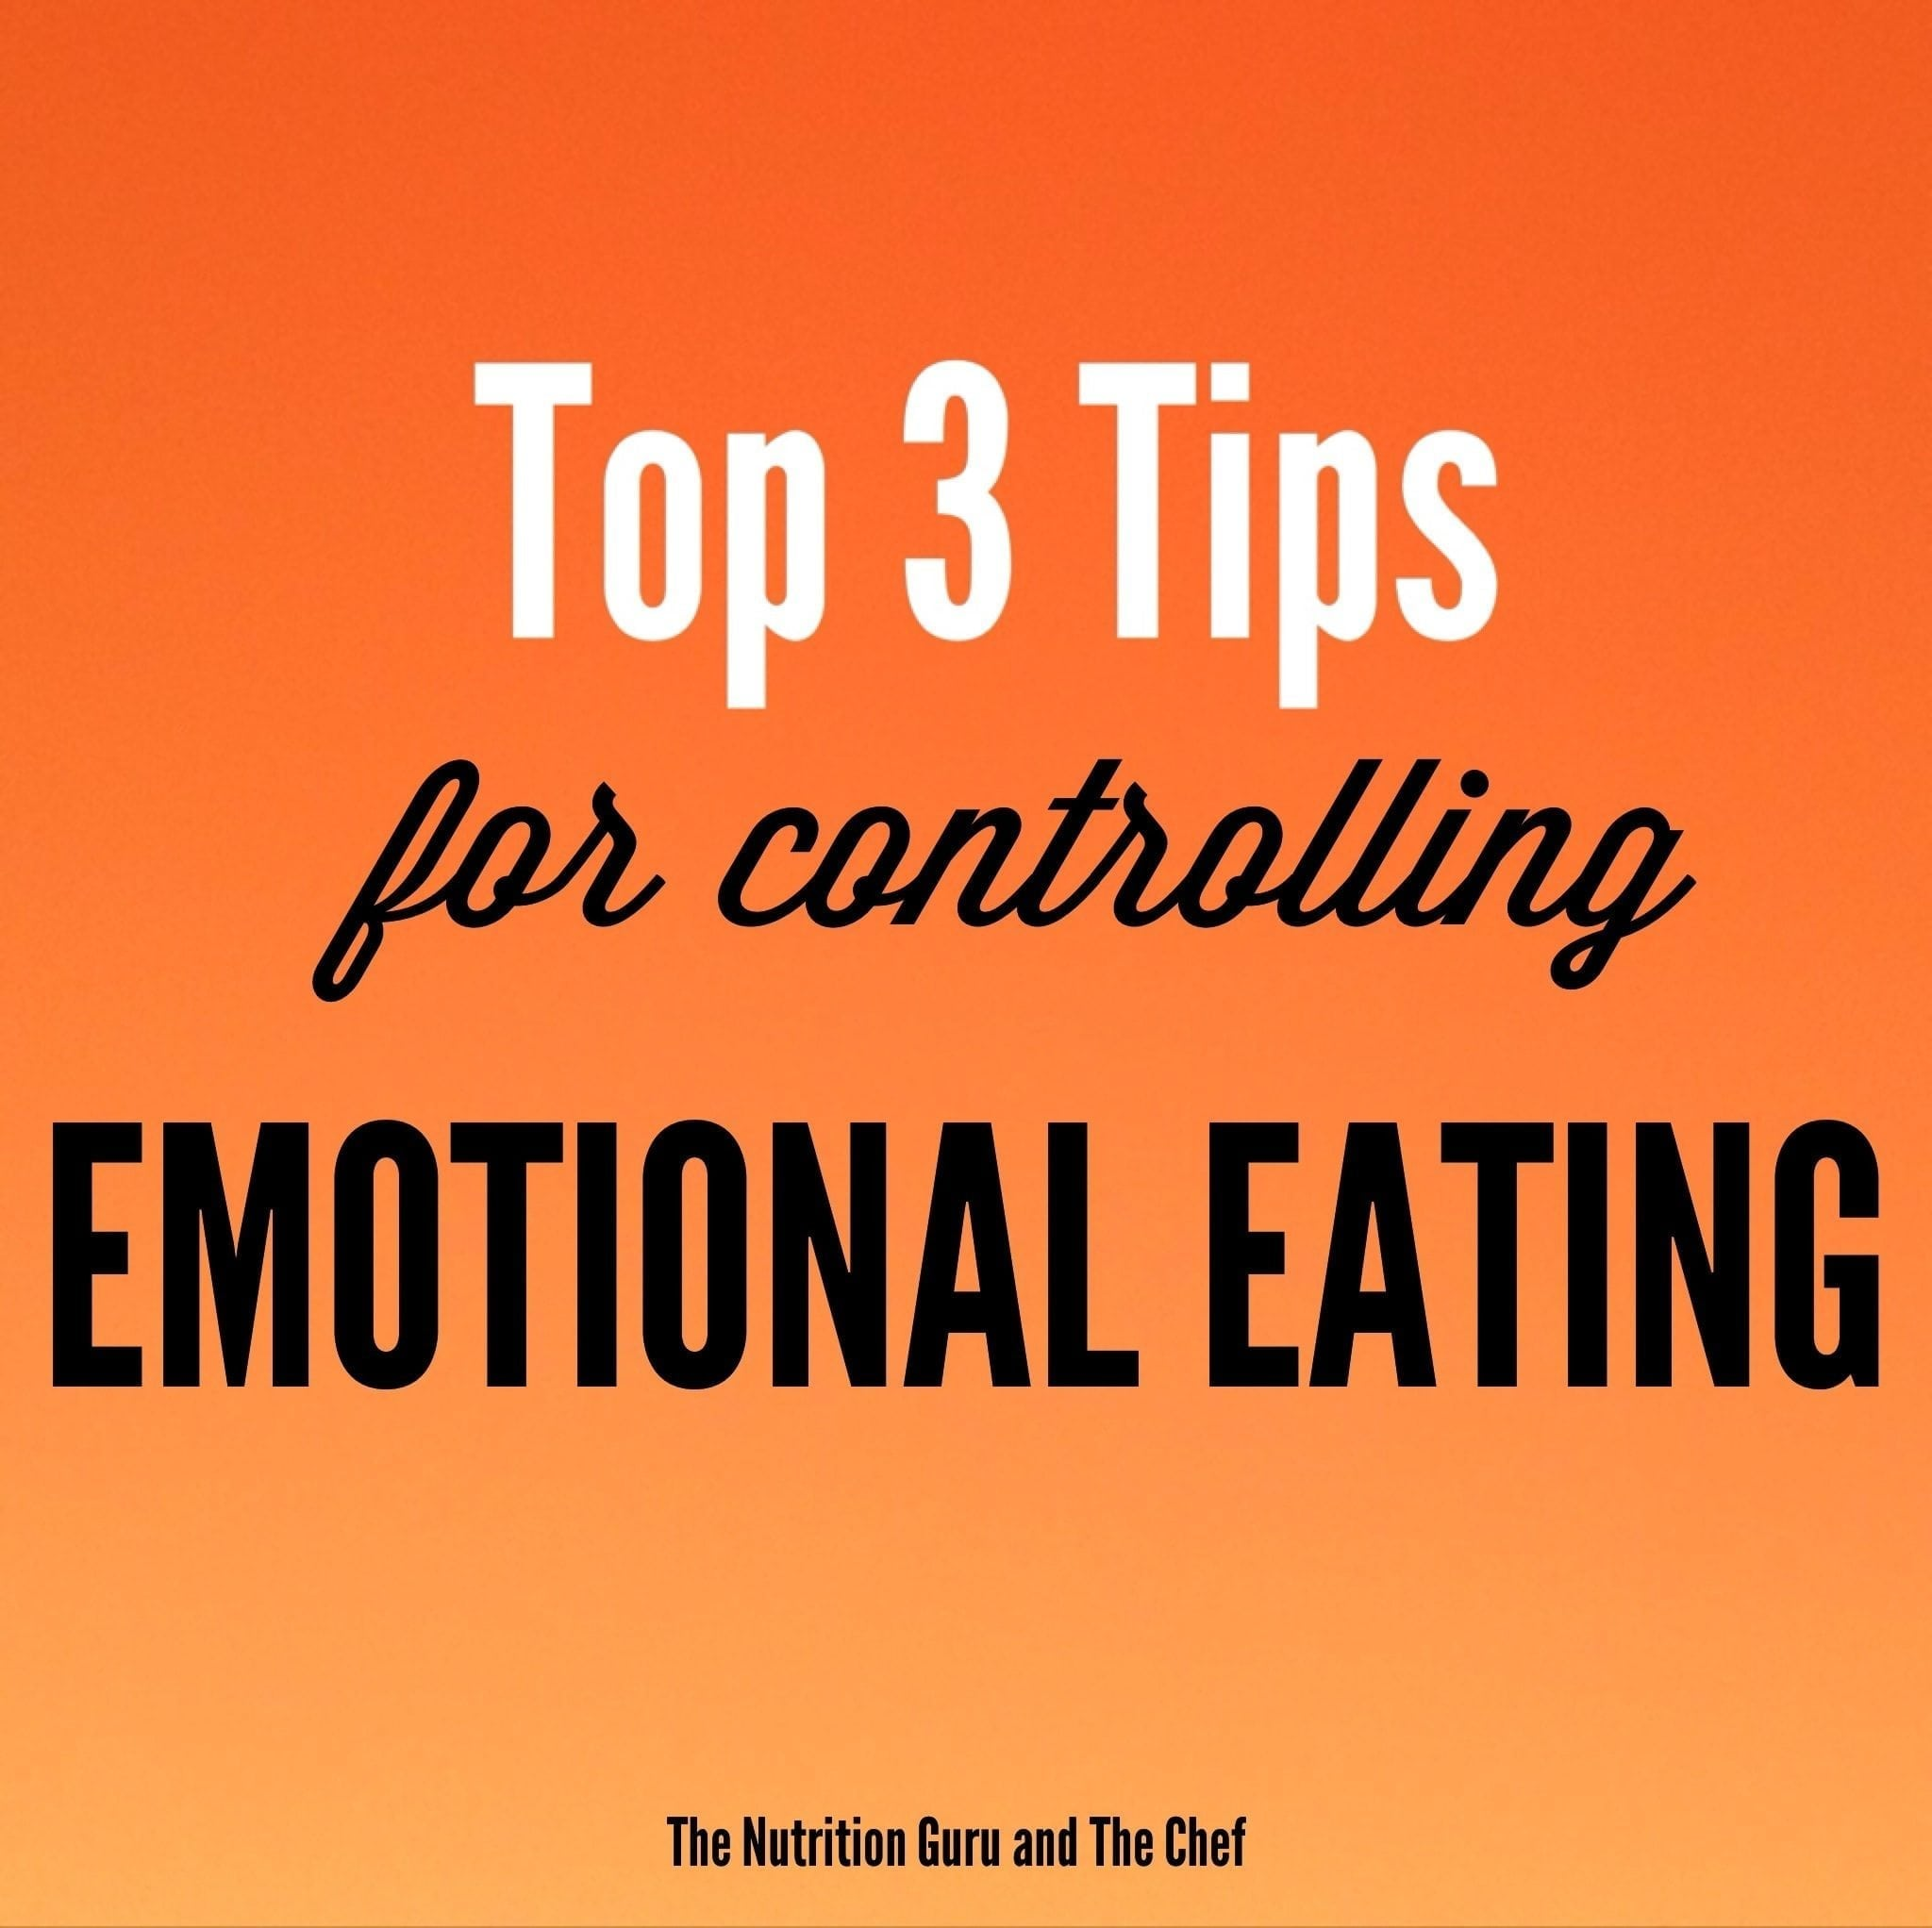 Top 3 tips for controlling emotional eating nutrition health clean eating weight loss